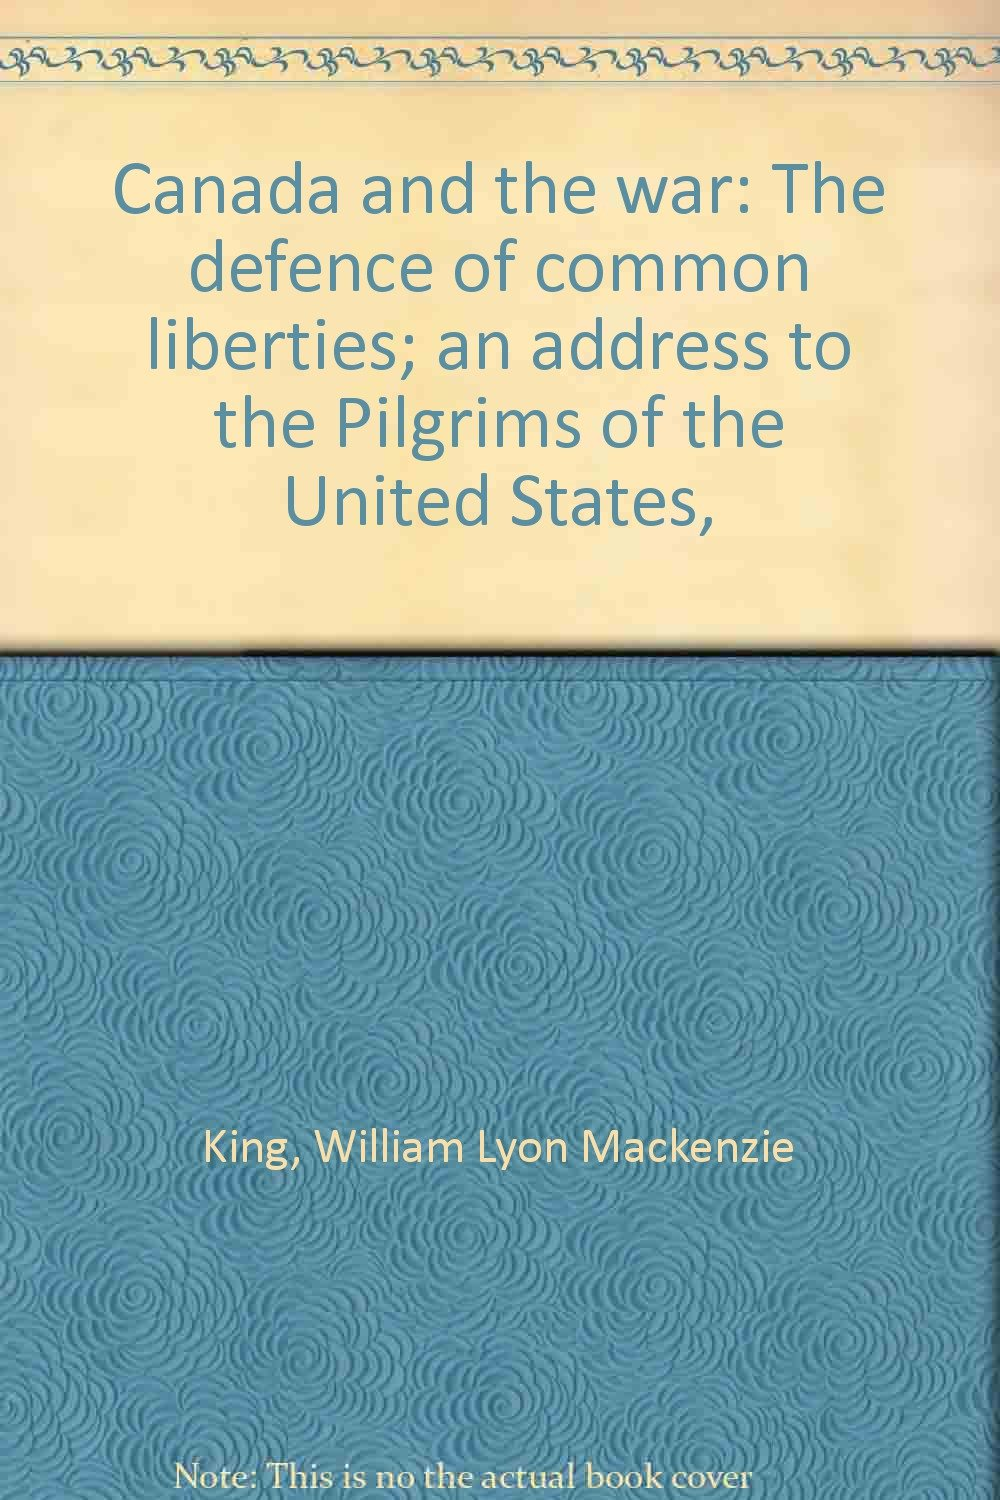 Canada and the war: The defence of common liberties; an address to the Pilgrims of the United States,